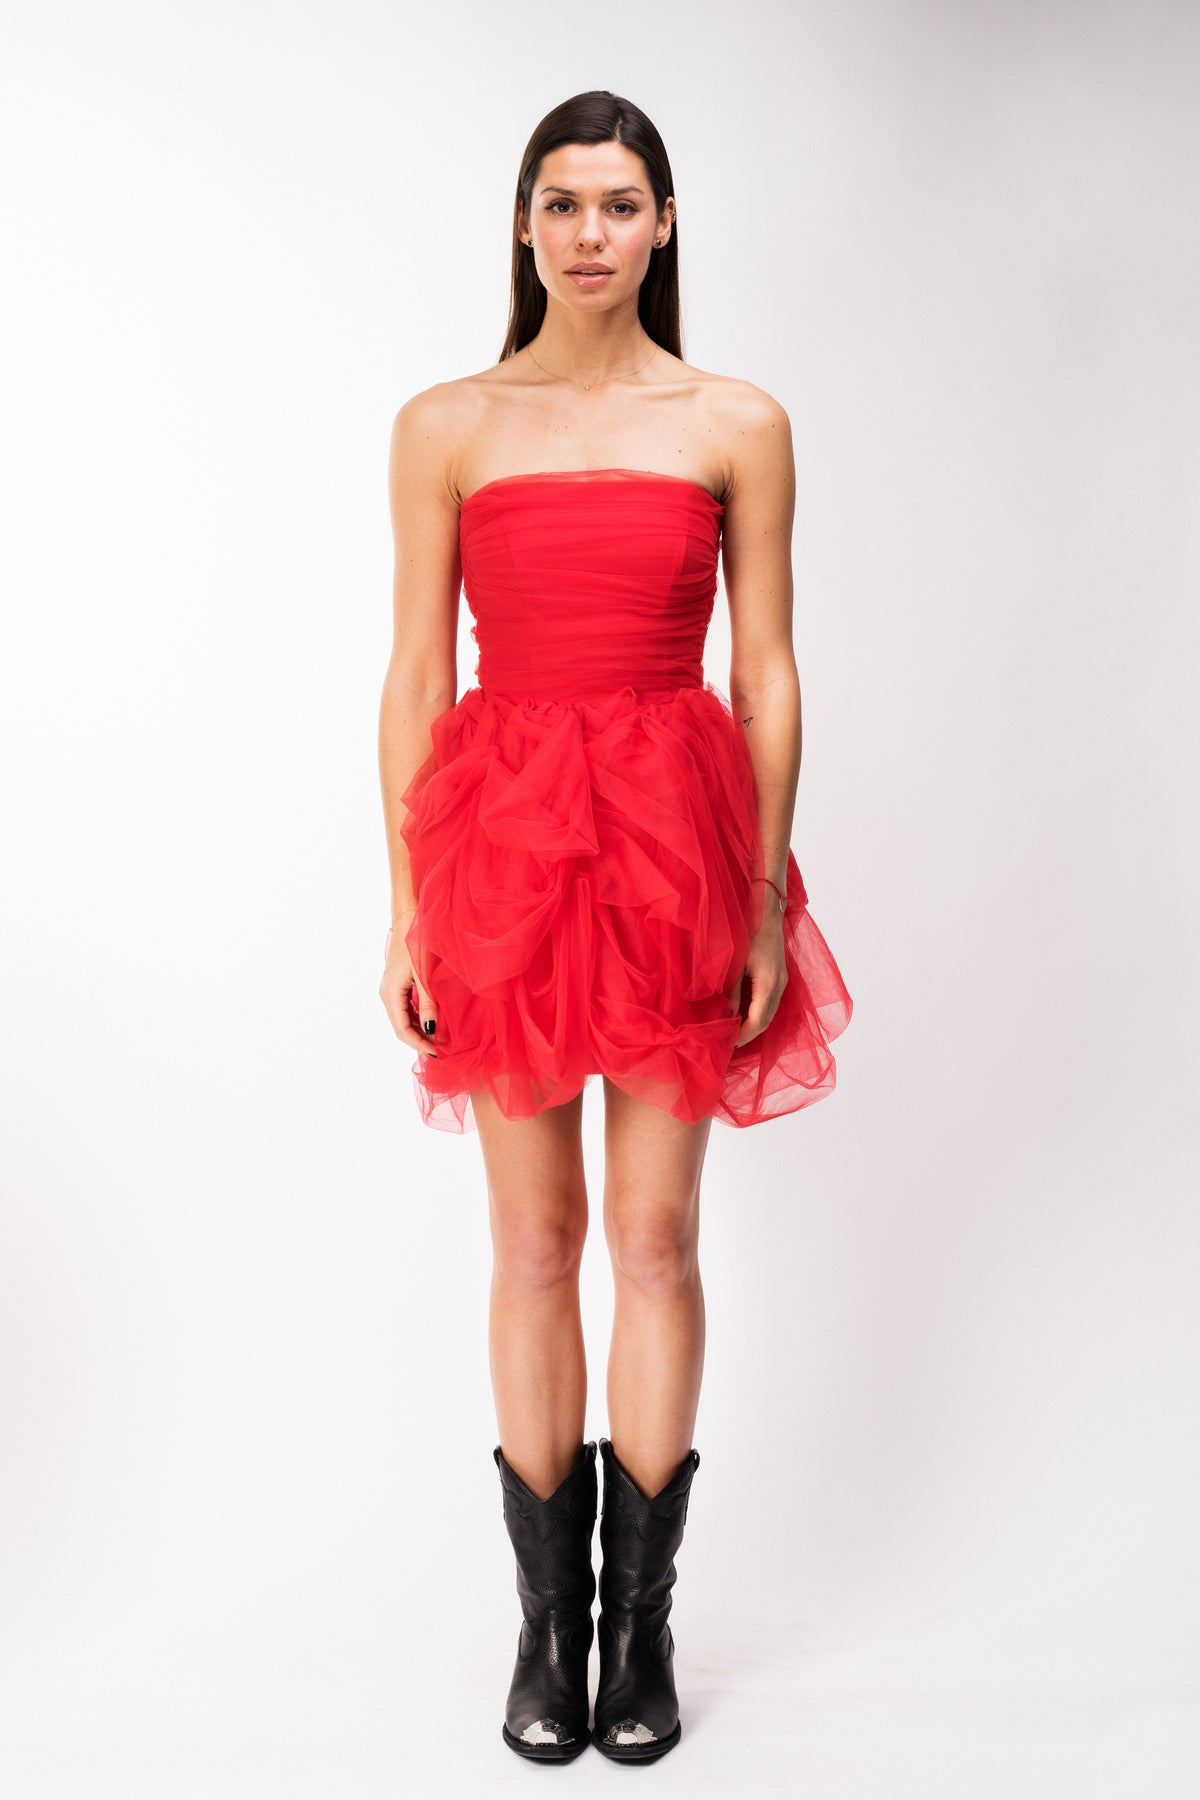 MODERN-BALLERINA-Scarlet-red-short-tulle-dress-le-slap-dresses-clothing.jpg